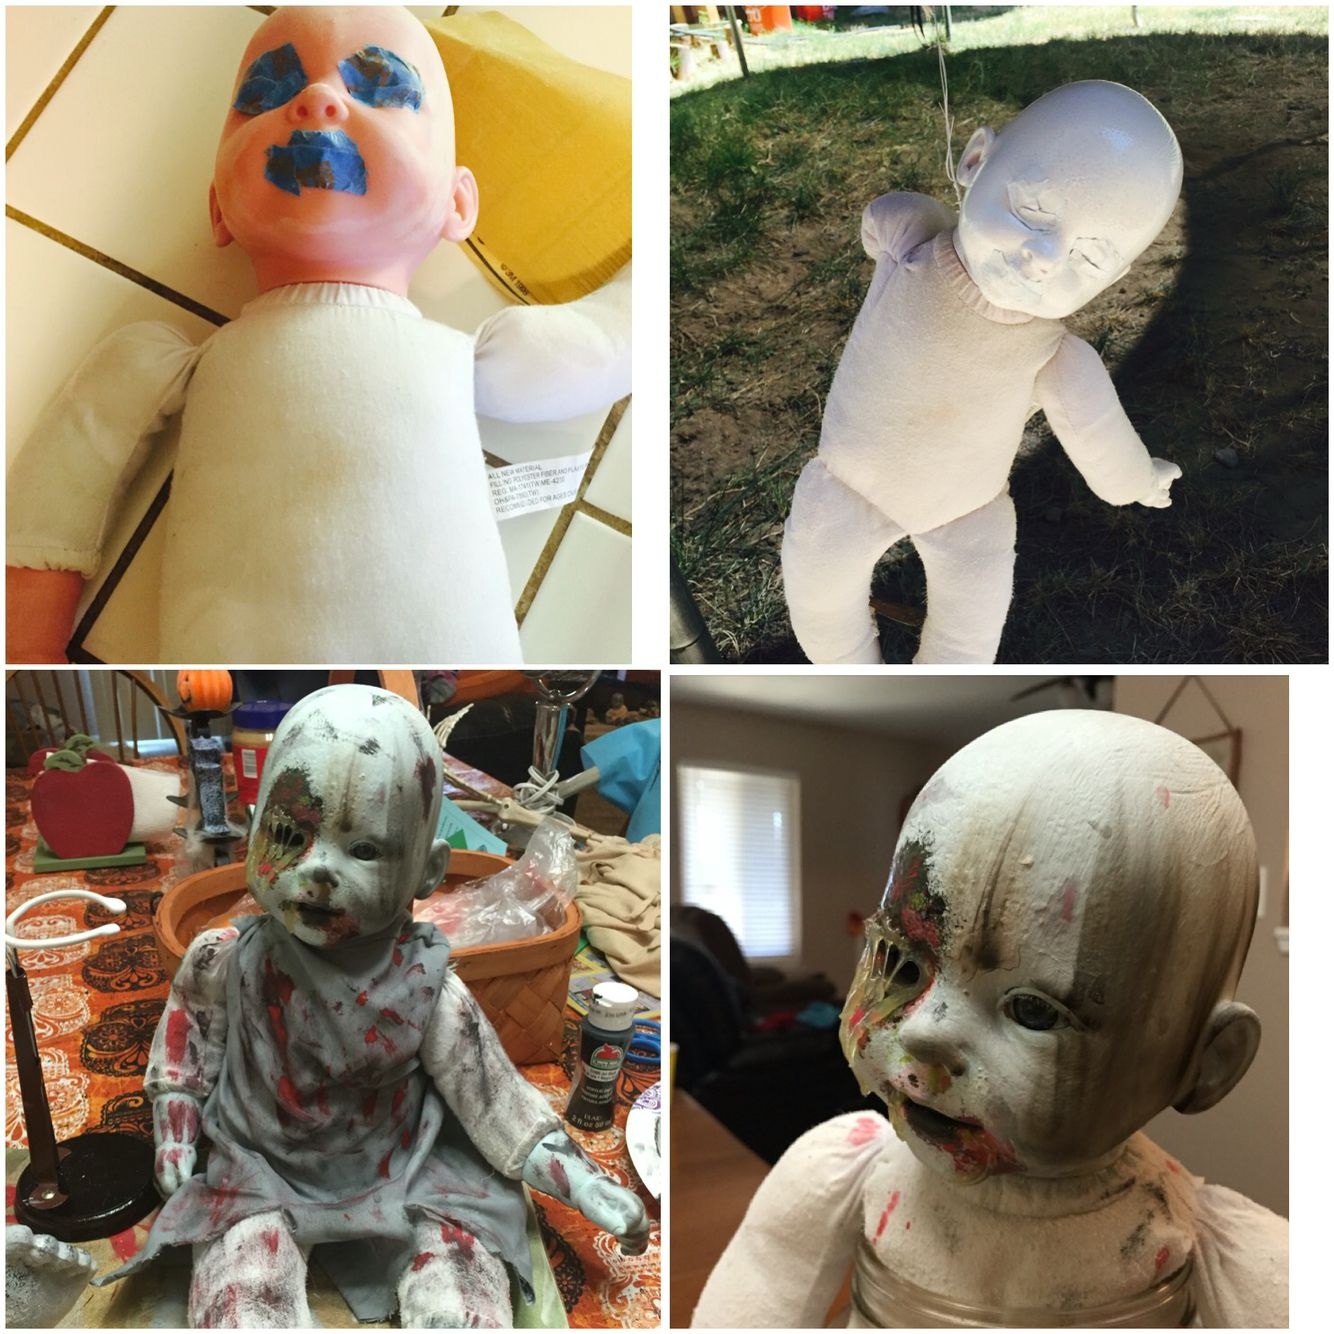 My Newest Creepy Baby Doll Makeover :)